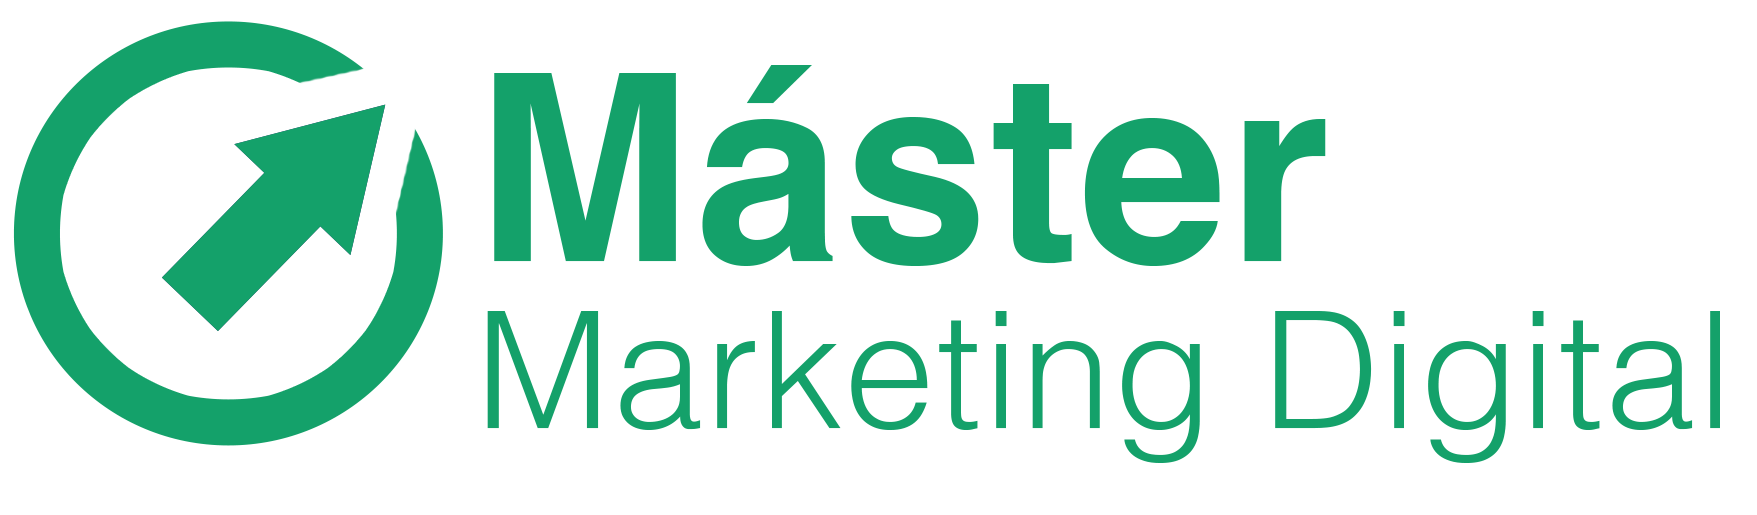 Máster en Marketing Digital, la información que necesitas